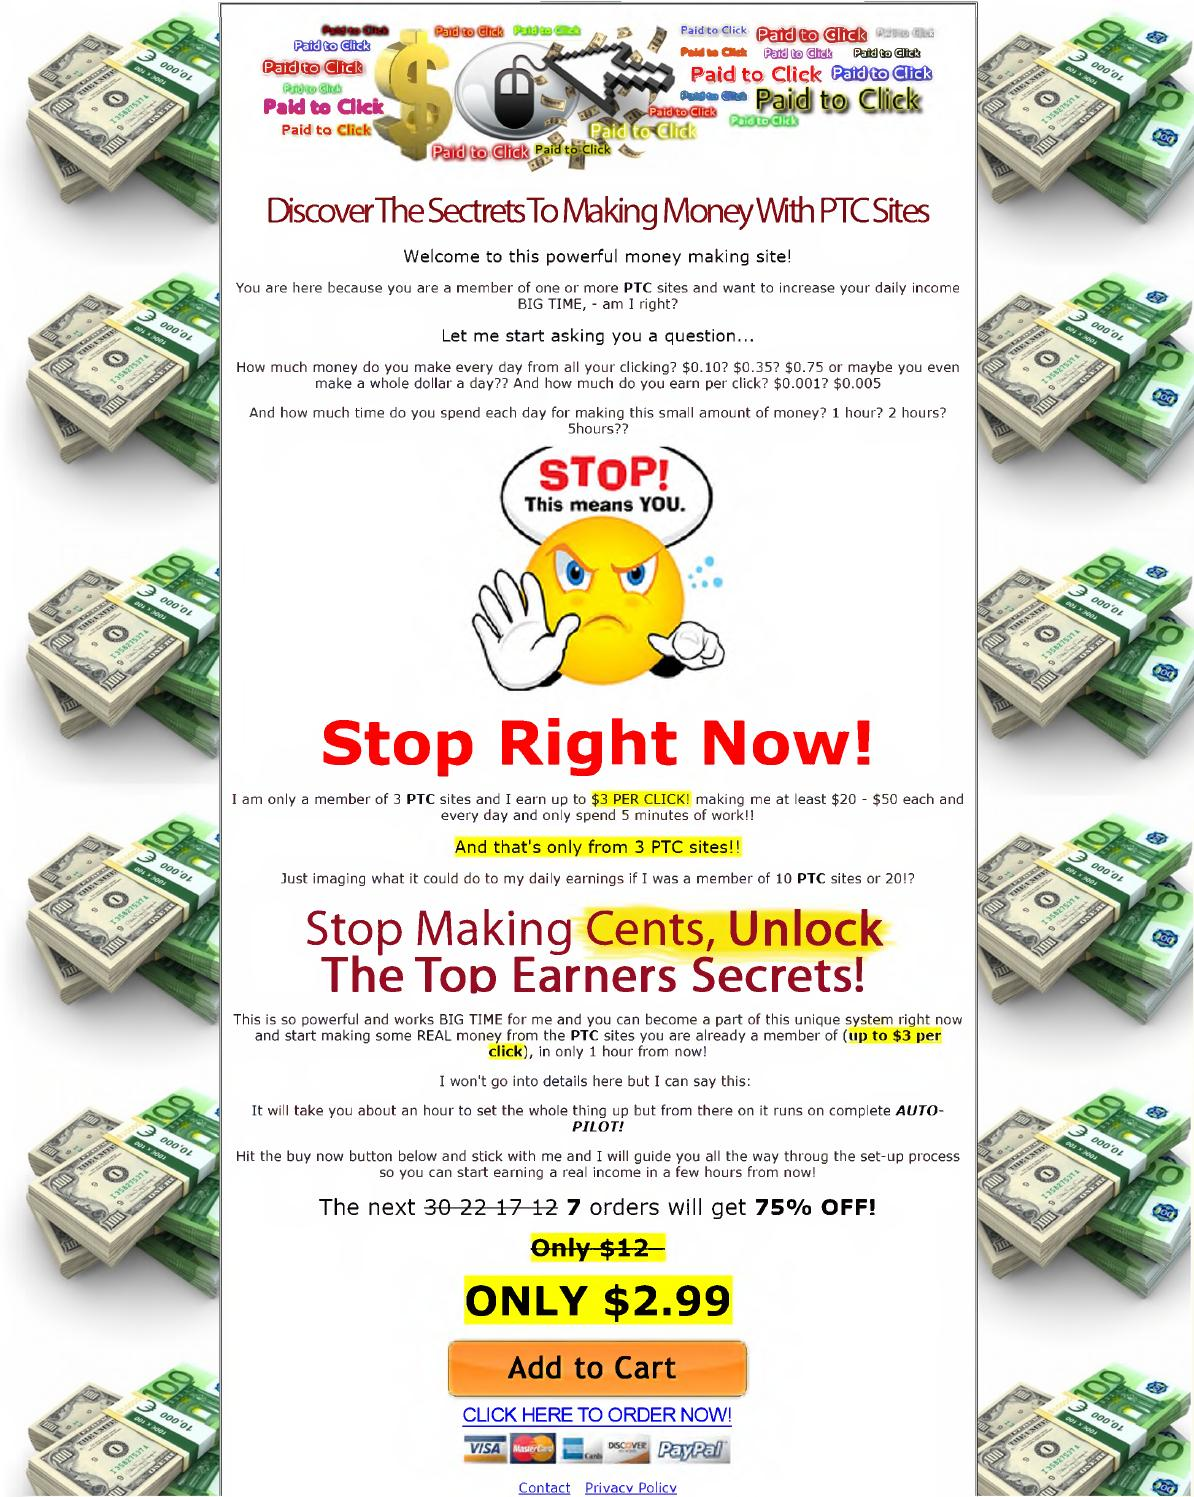 How to make 3 us dollar per click from CPC PTC website